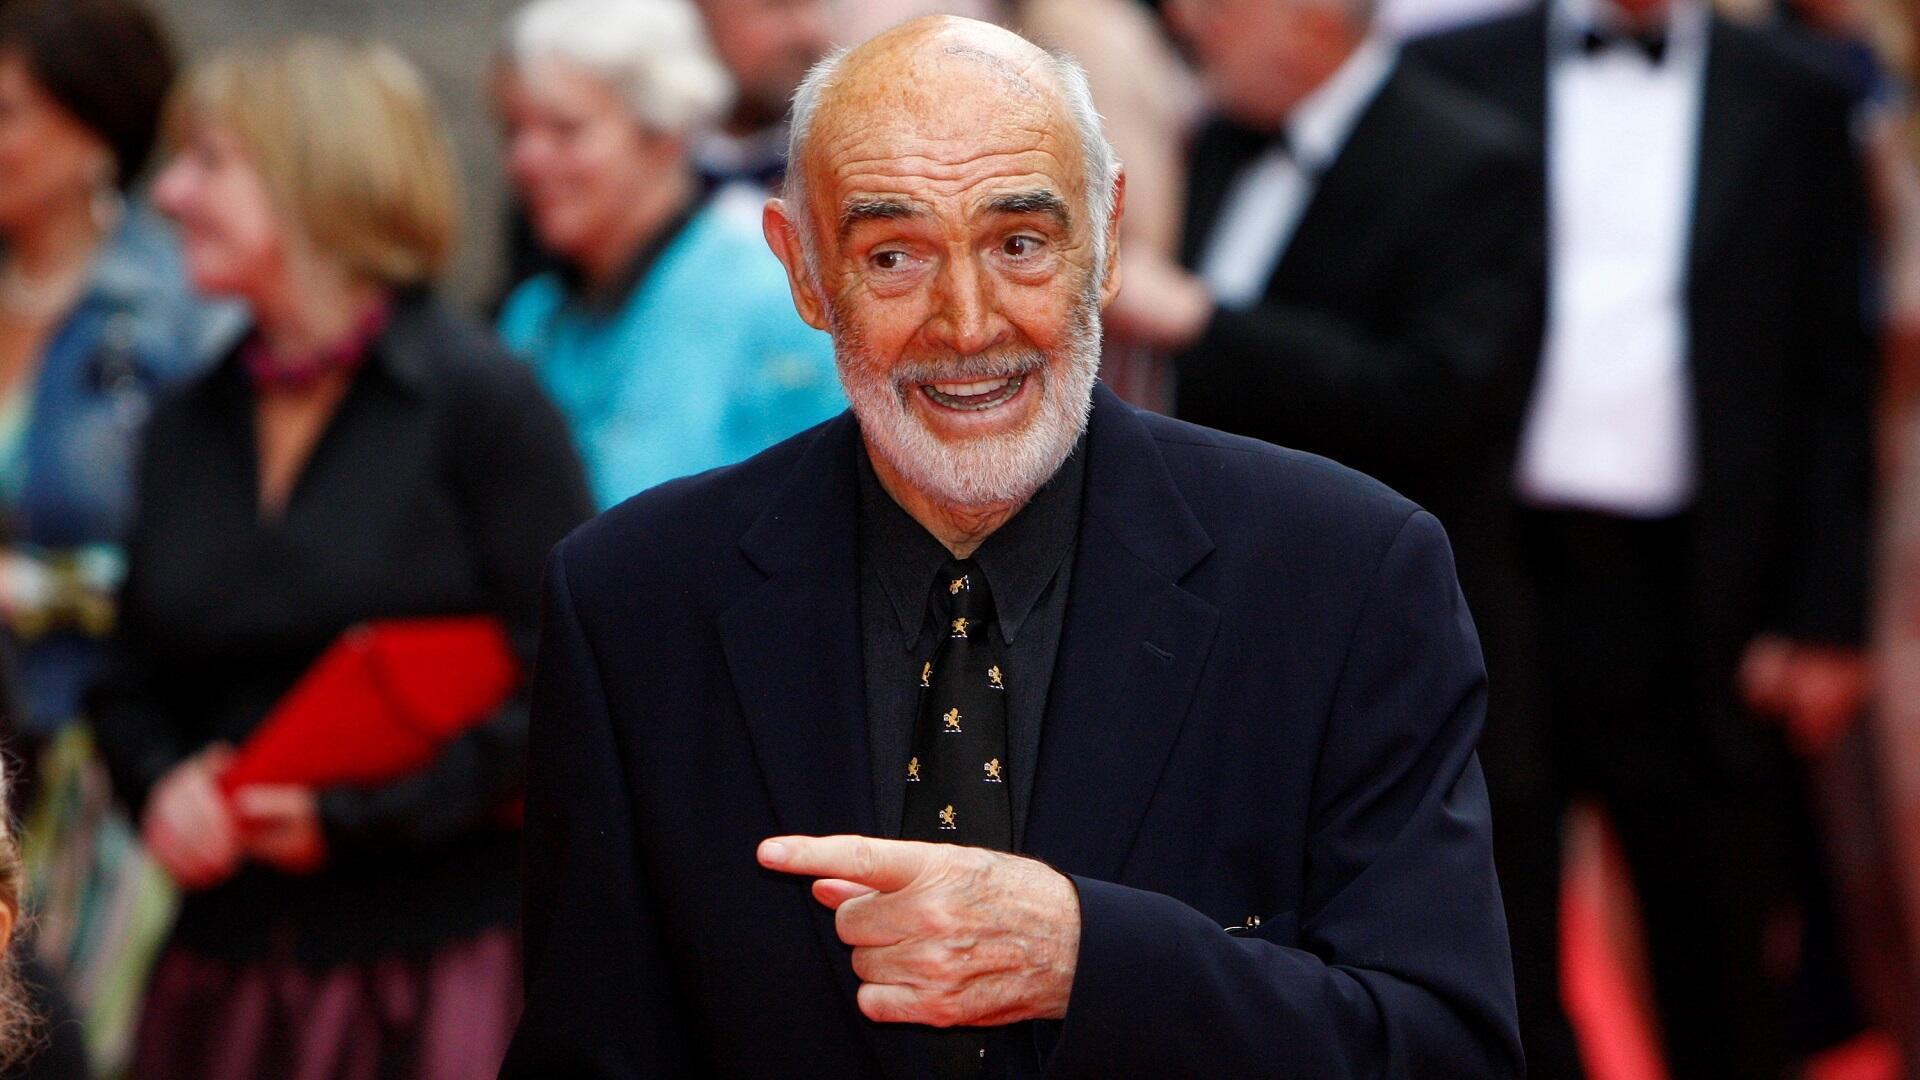 Sean Connery arrives for the Edinburgh International Film Festival opening night at the Festival Theatre in Edinburgh, Scotland, on June 16, 2010.